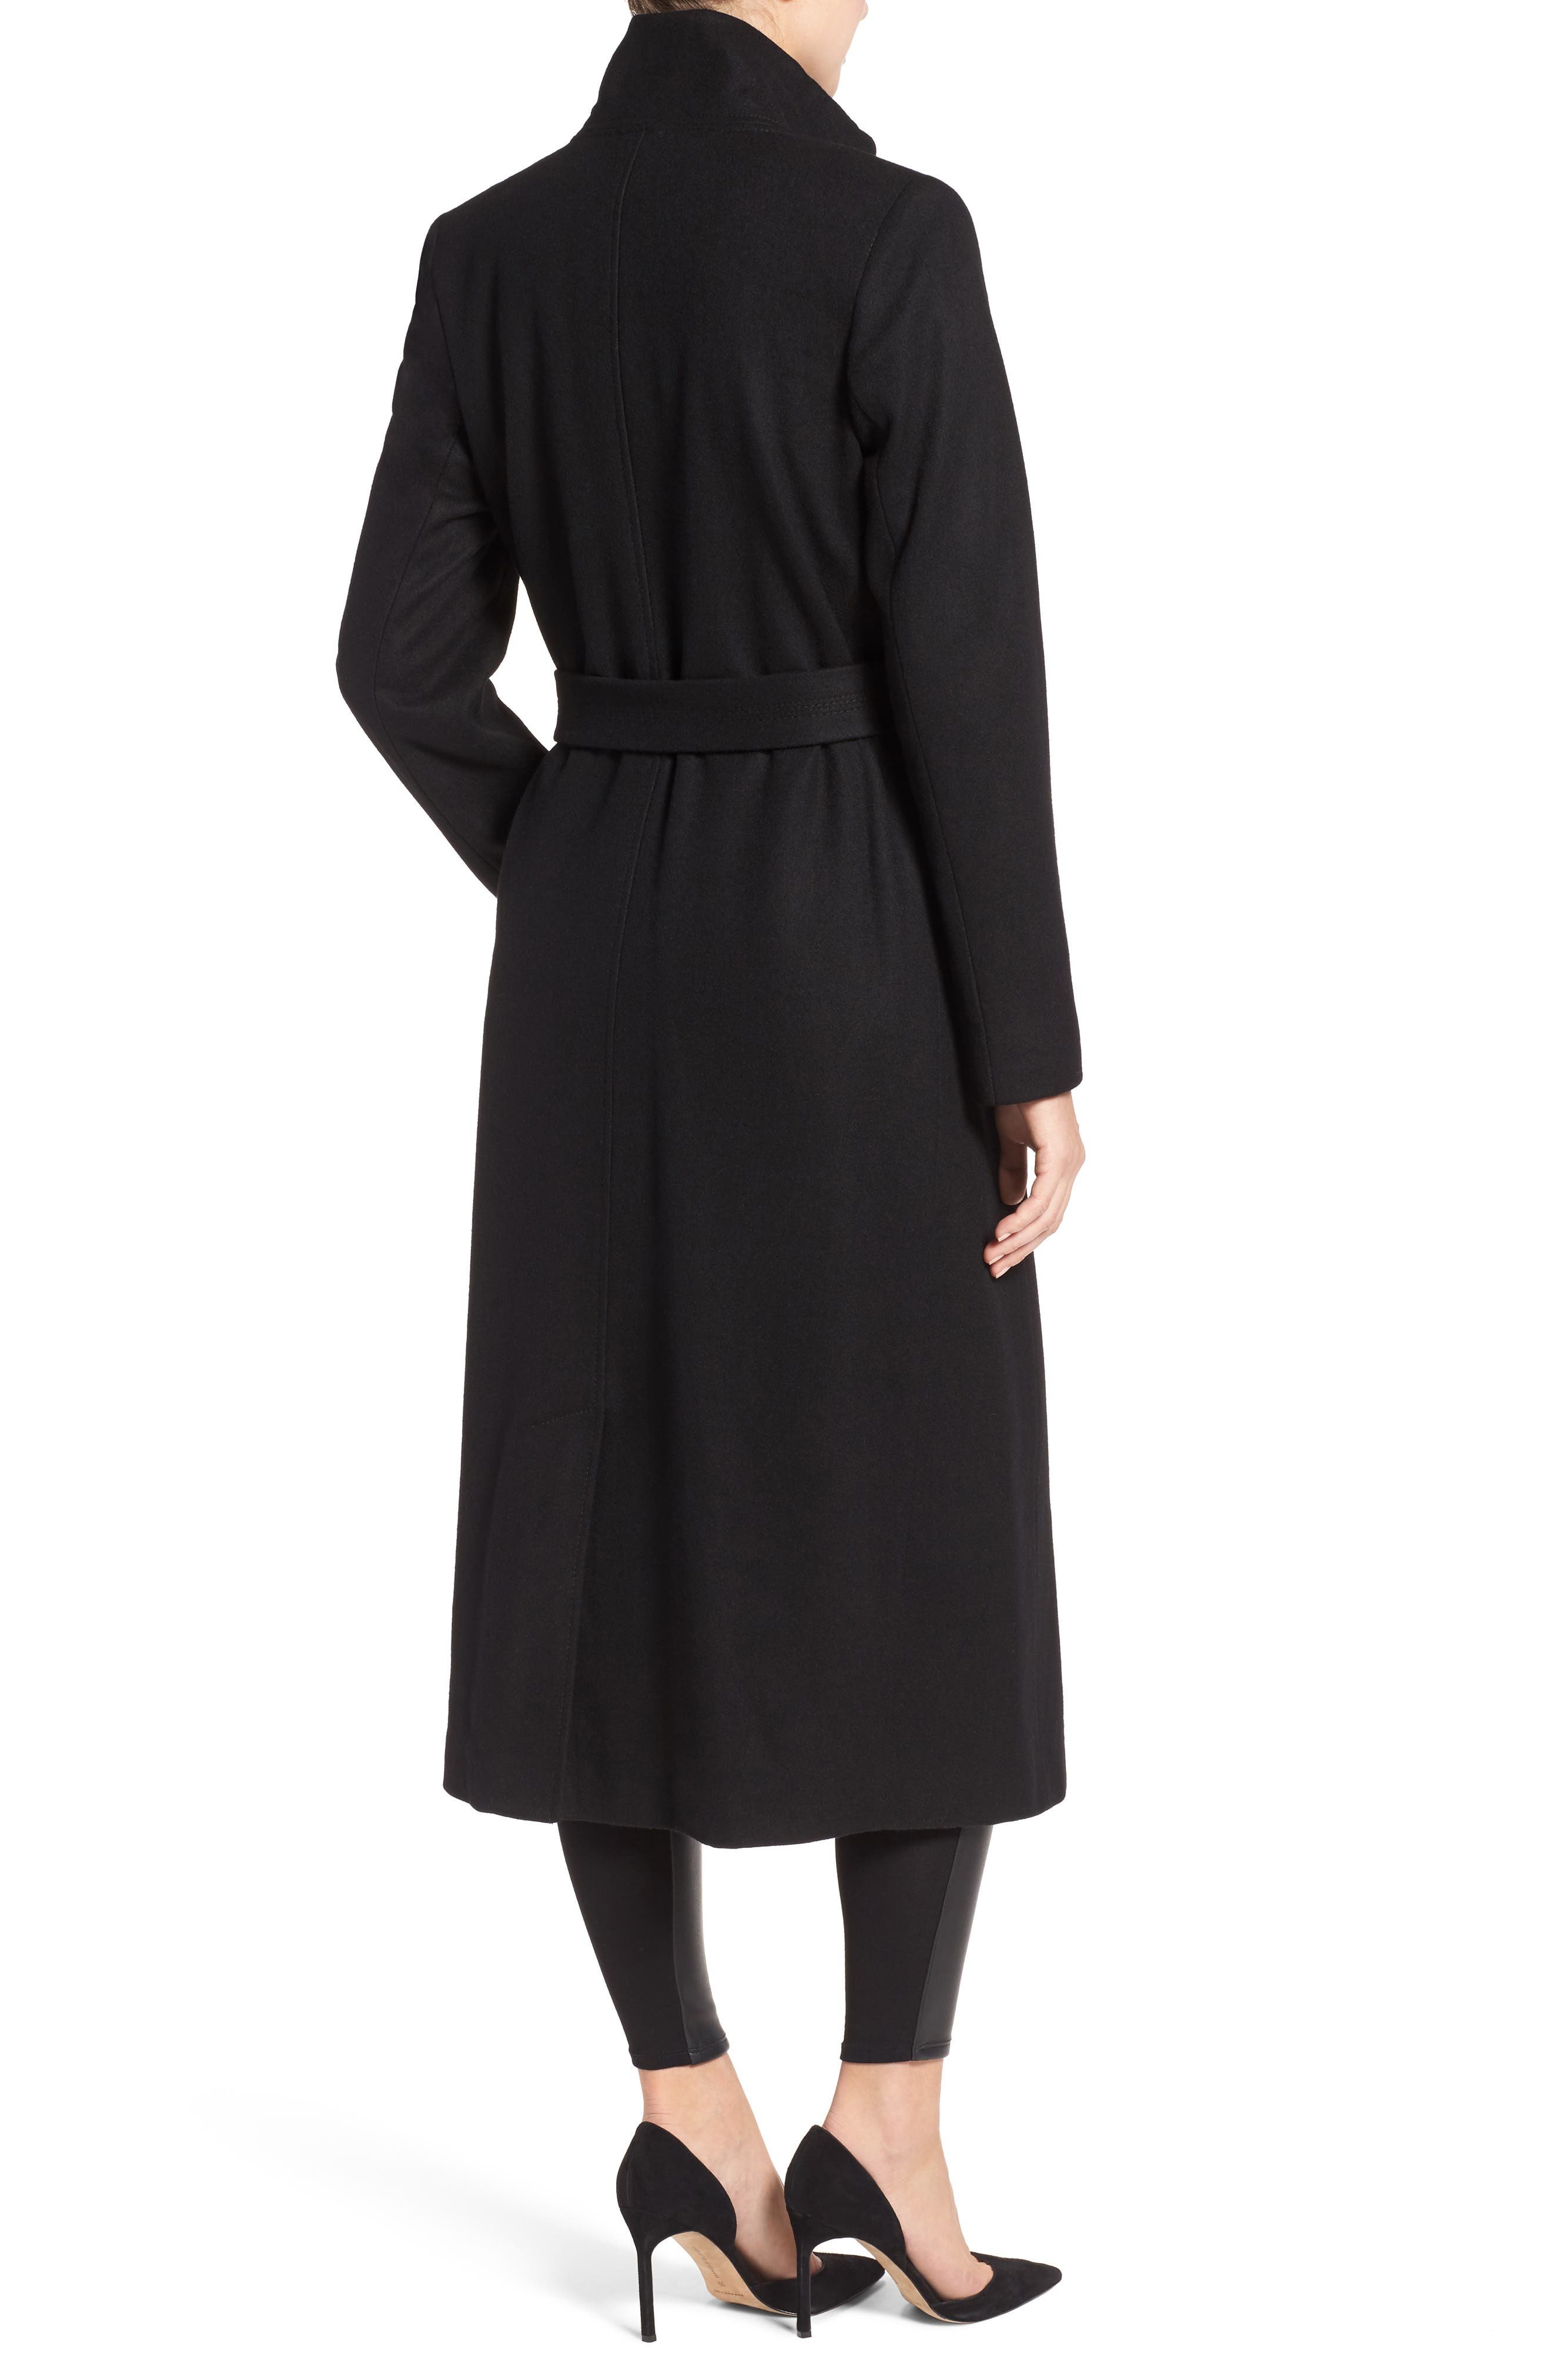 KENNETH COLE NEW YORK, Fencer Melton Wool Maxi Coat, Alternate thumbnail 2, color, 001